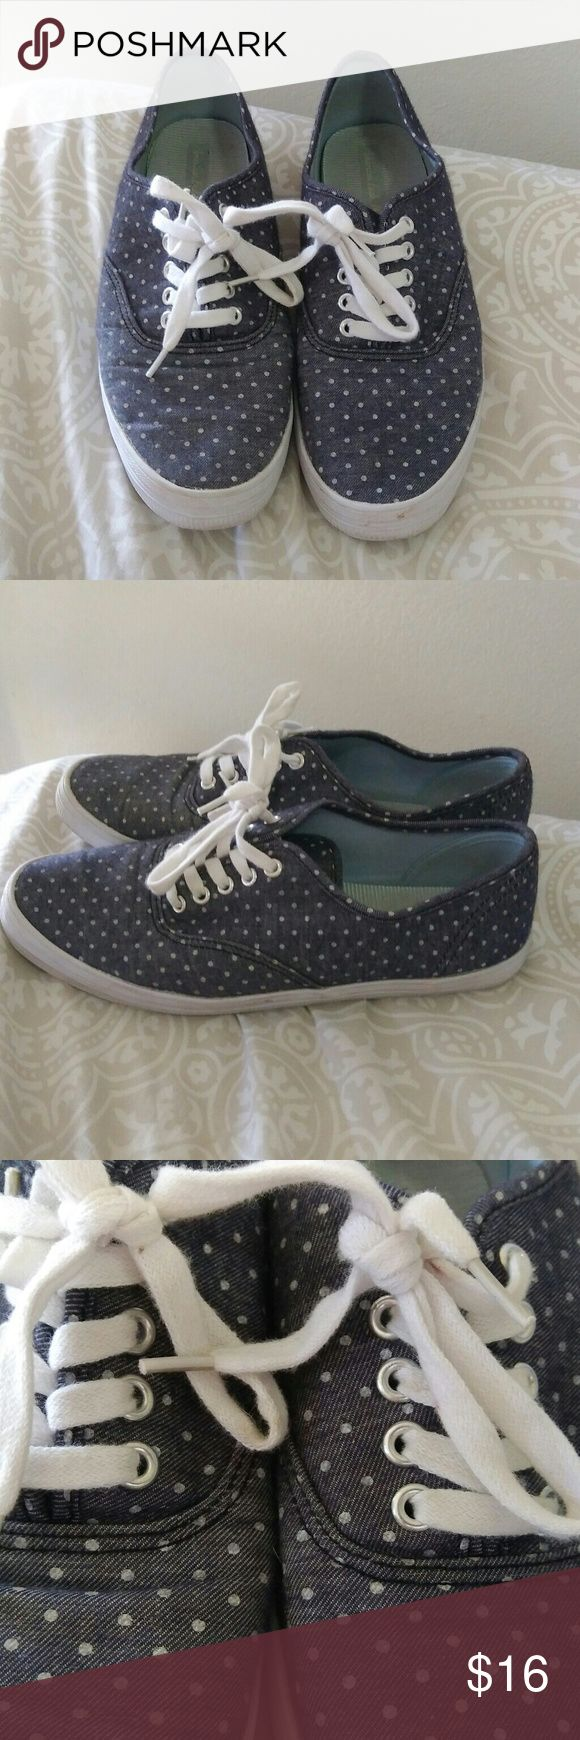 American Eagle polka dot sneakers Jean blue sneakers with cute white polkadots size 8. Reasonable offers are accepted. American Eagle Outfitters Shoes Sneakers